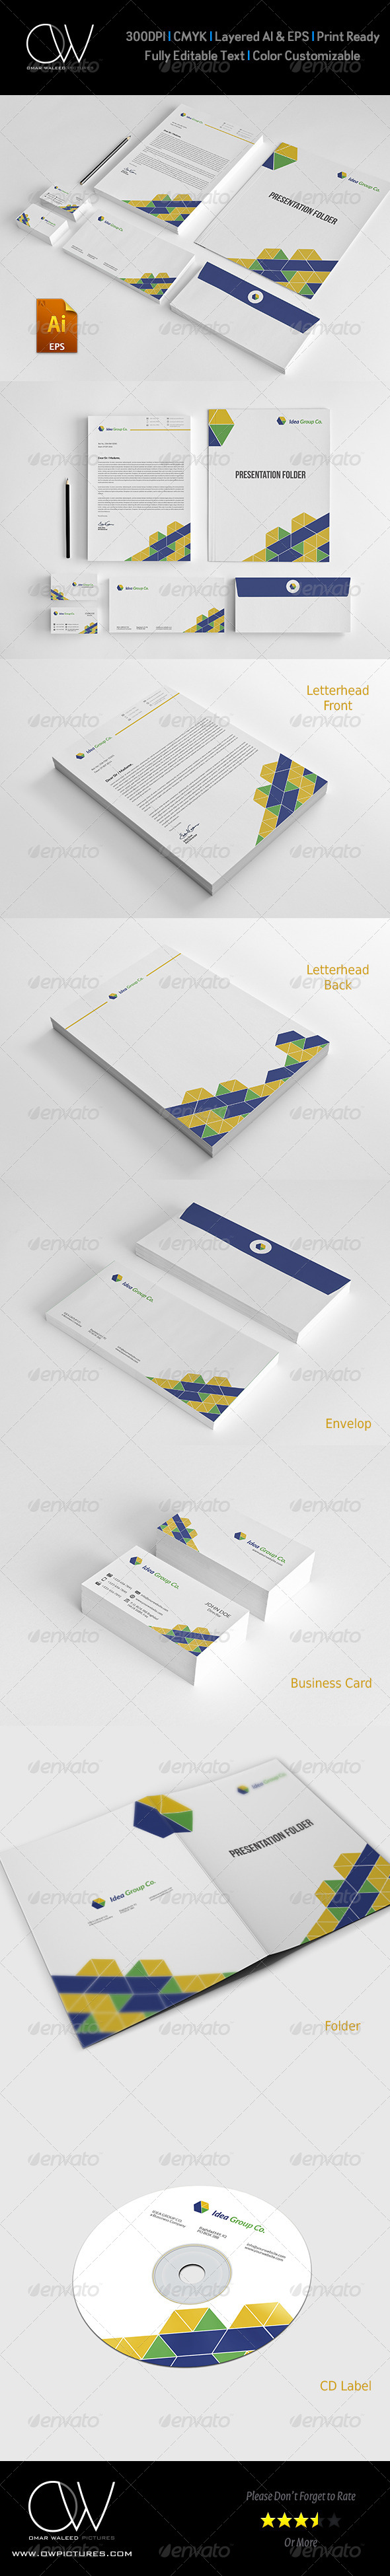 GraphicRiver Corporate Stationery Pack Design Template Vol.10 7812031